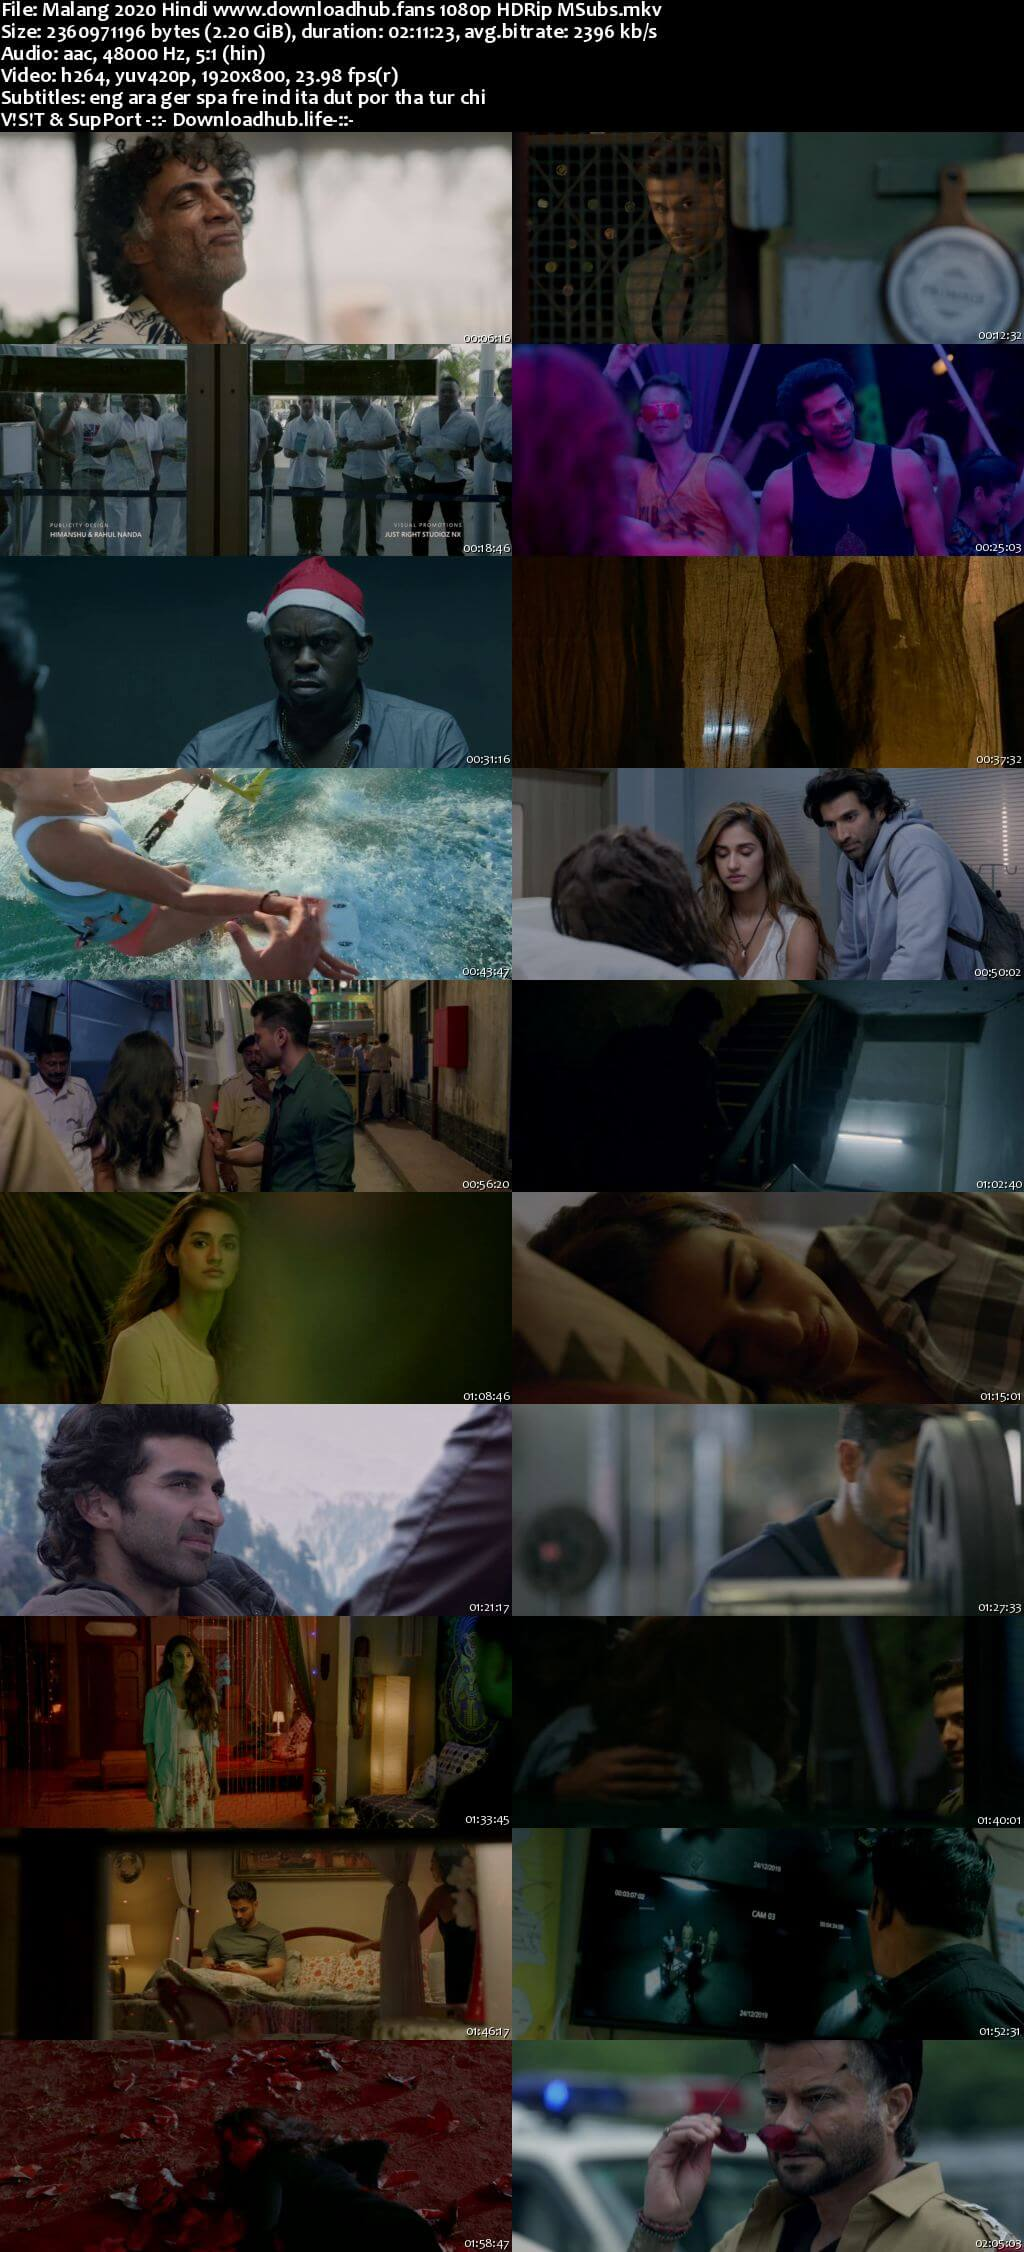 Malang 2020 Hindi 1080p HDRip MSubs